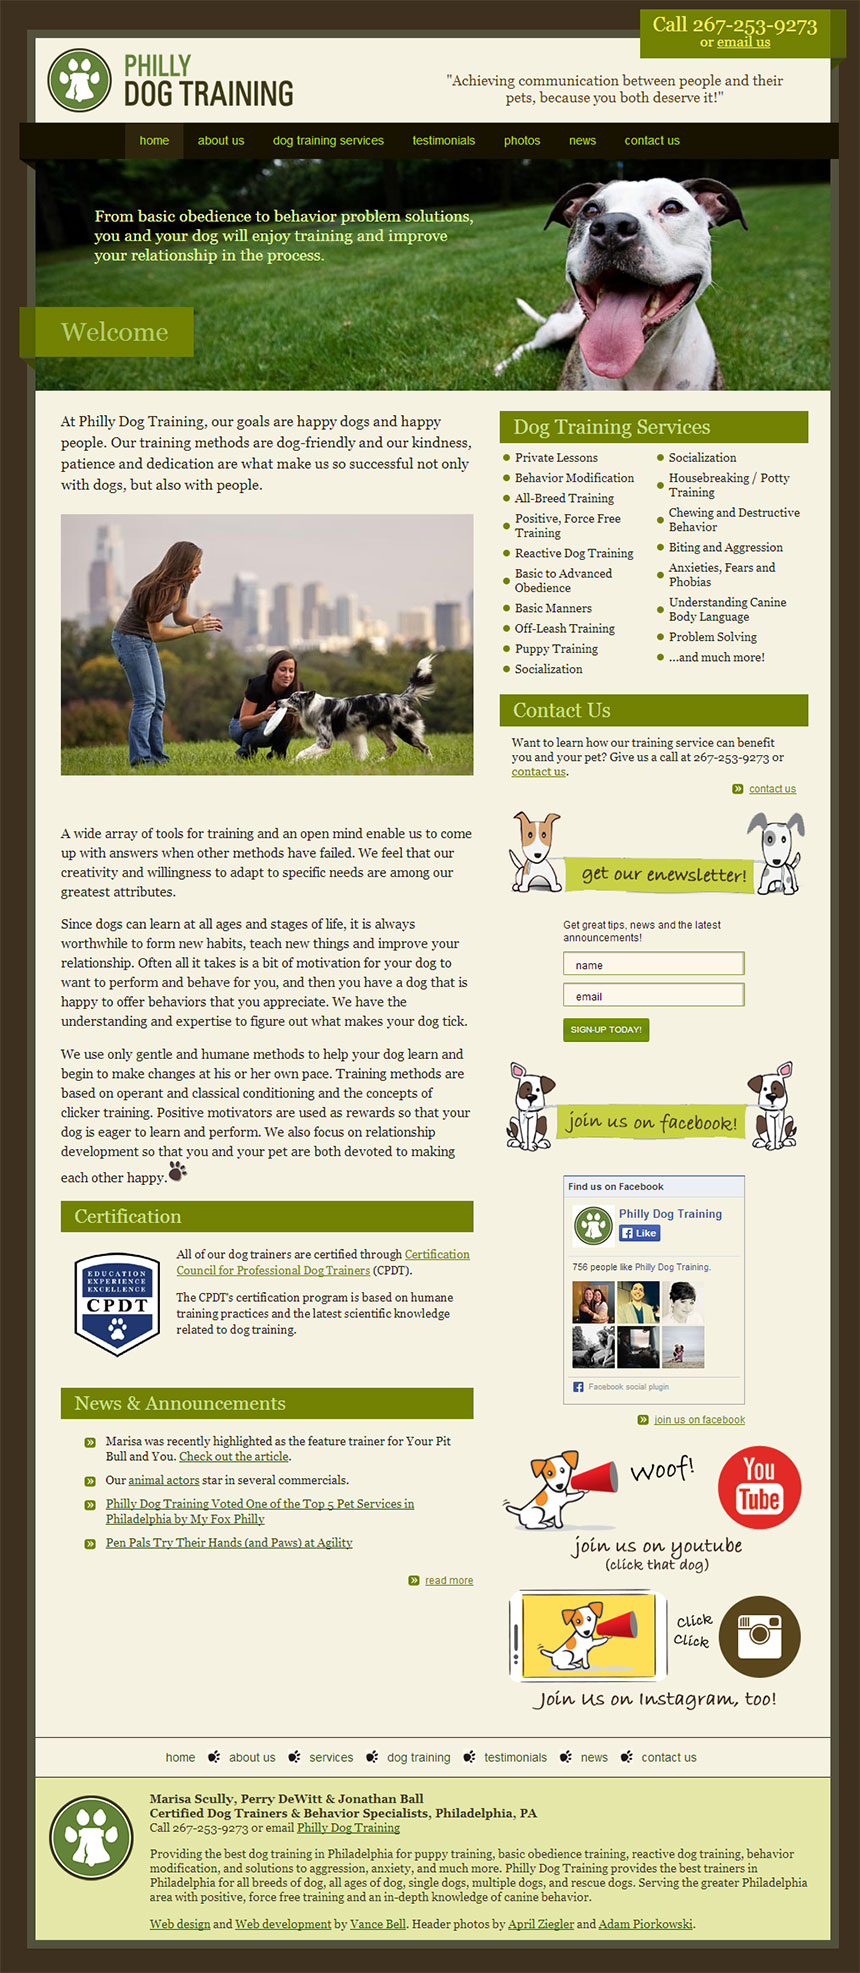 Philly Dog Training Web Design